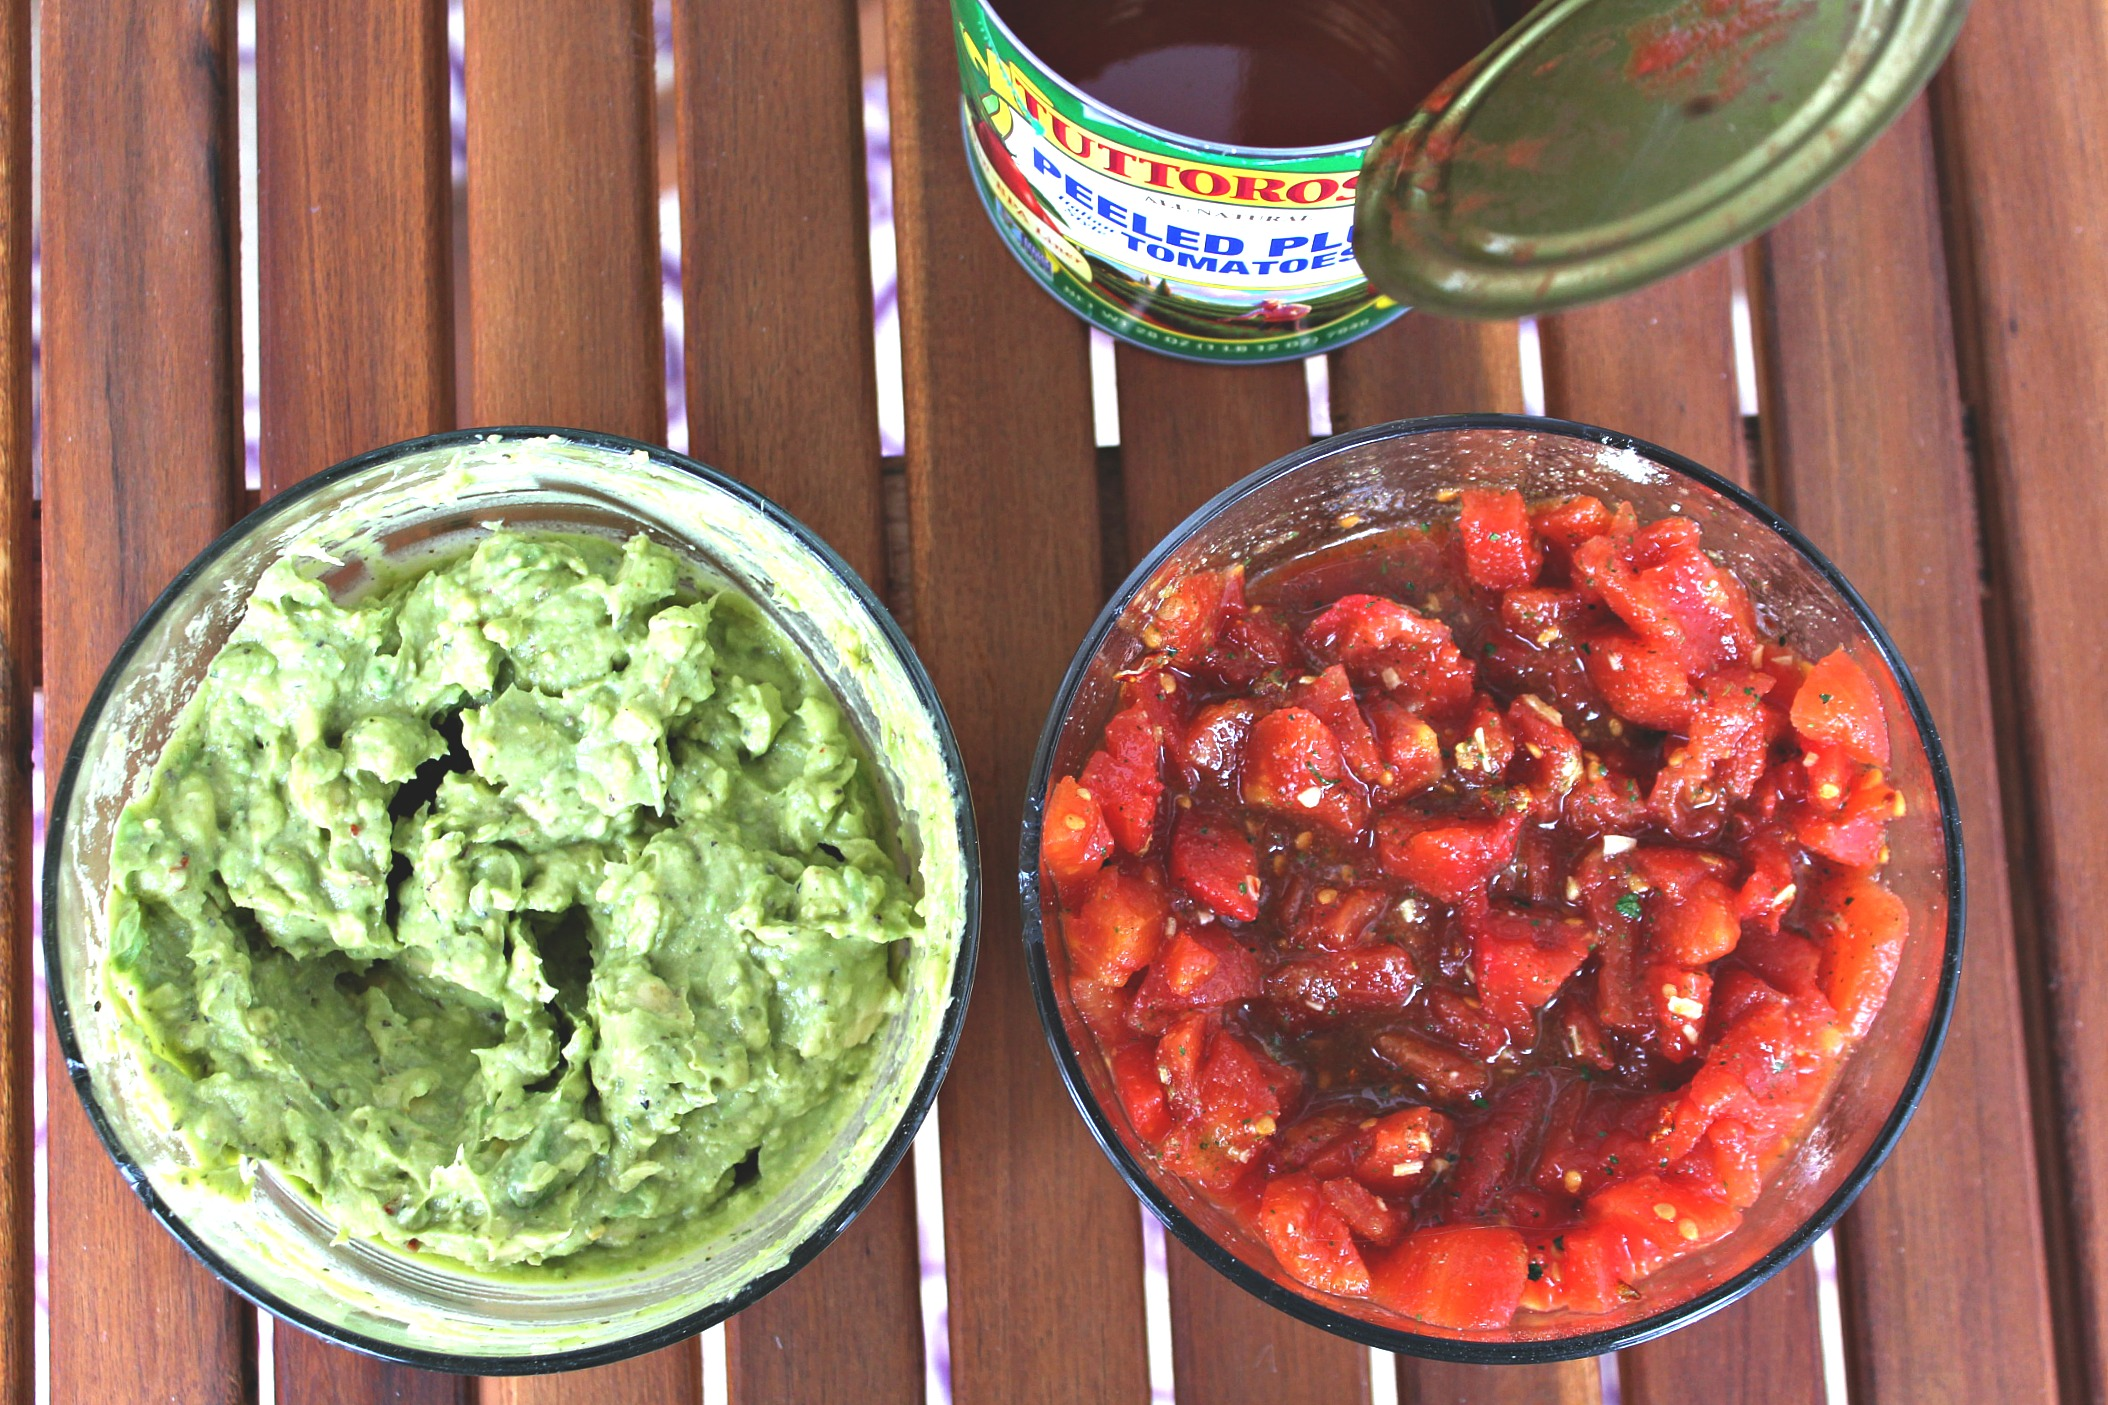 Tuttorosso Peeled Plum Tomato Salsa & Guacamole: Same Ingredients, Different Recipes!